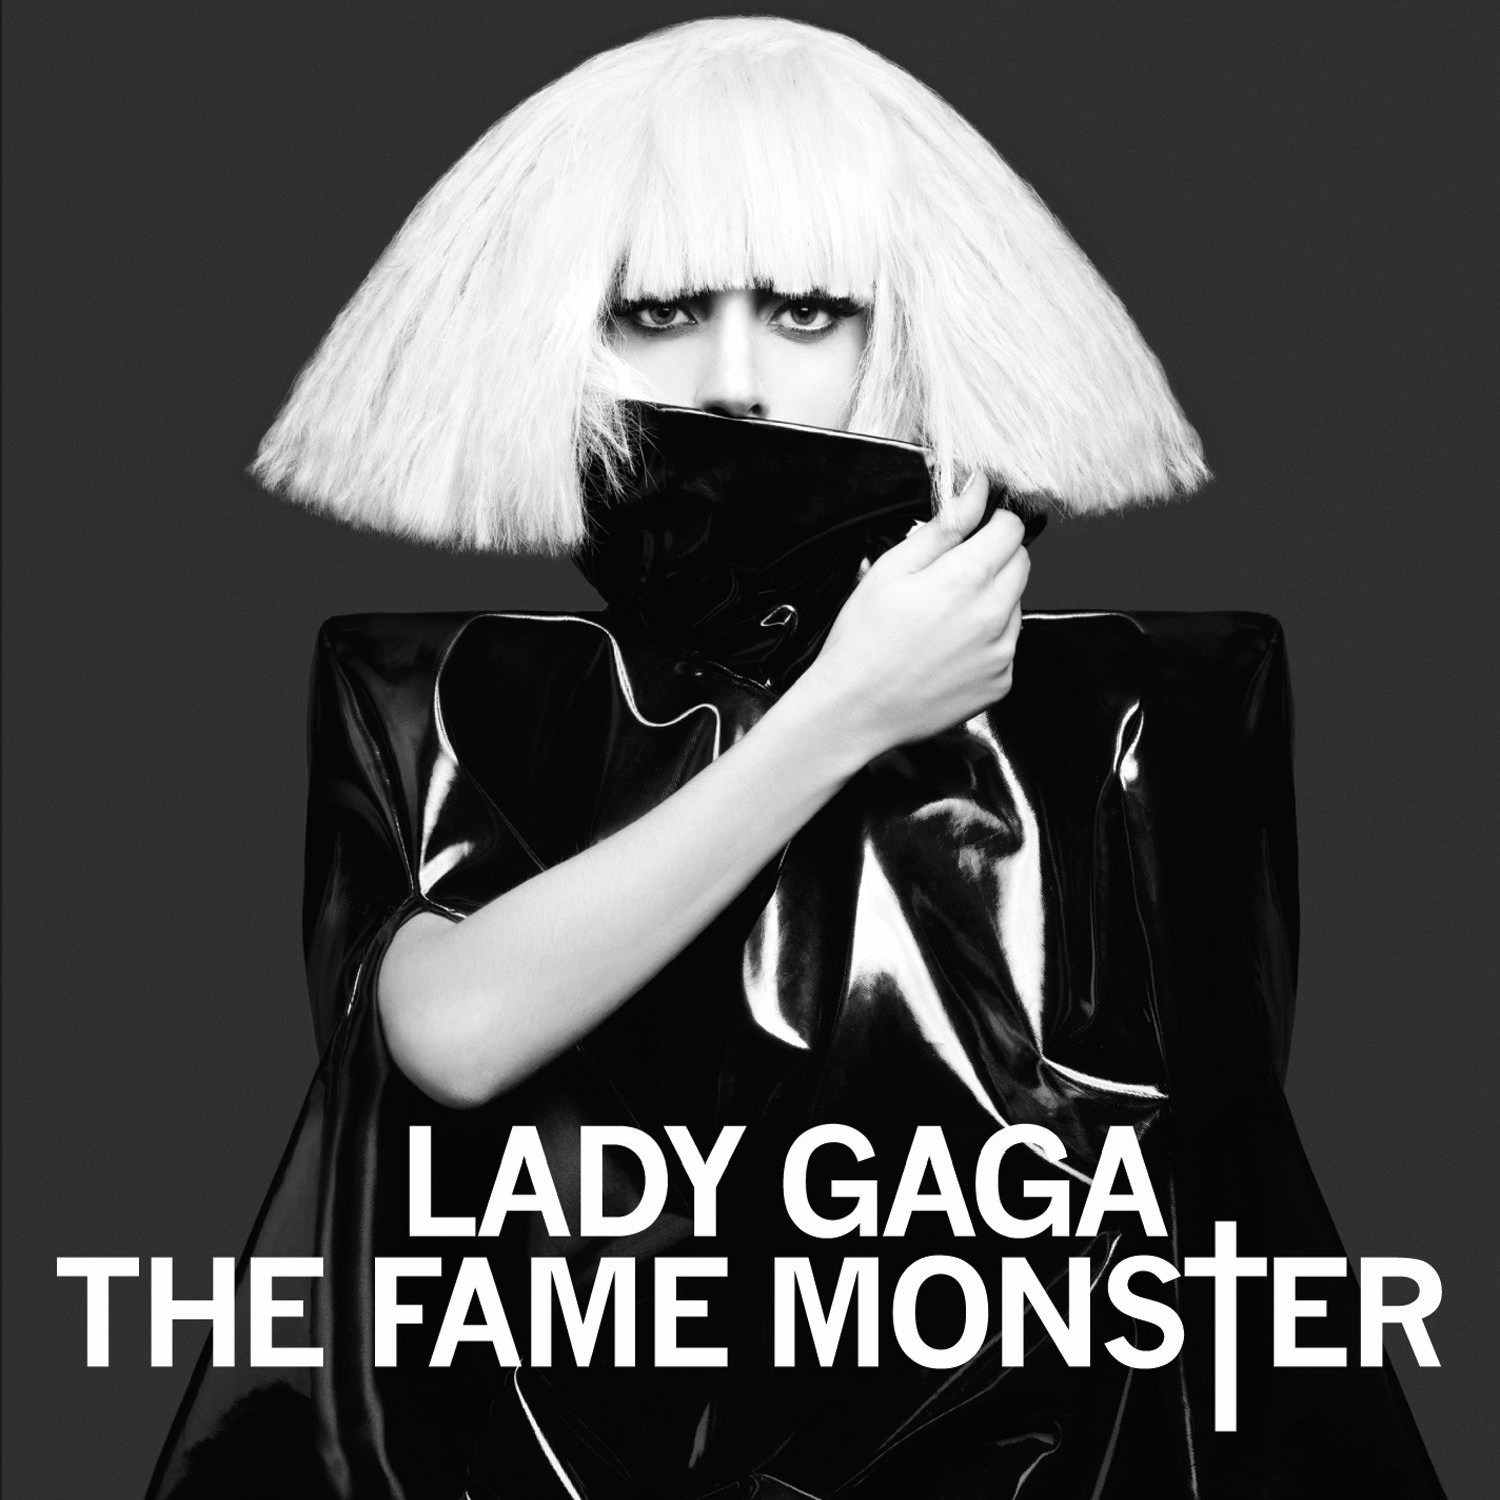 Lady gaga the fame monster book